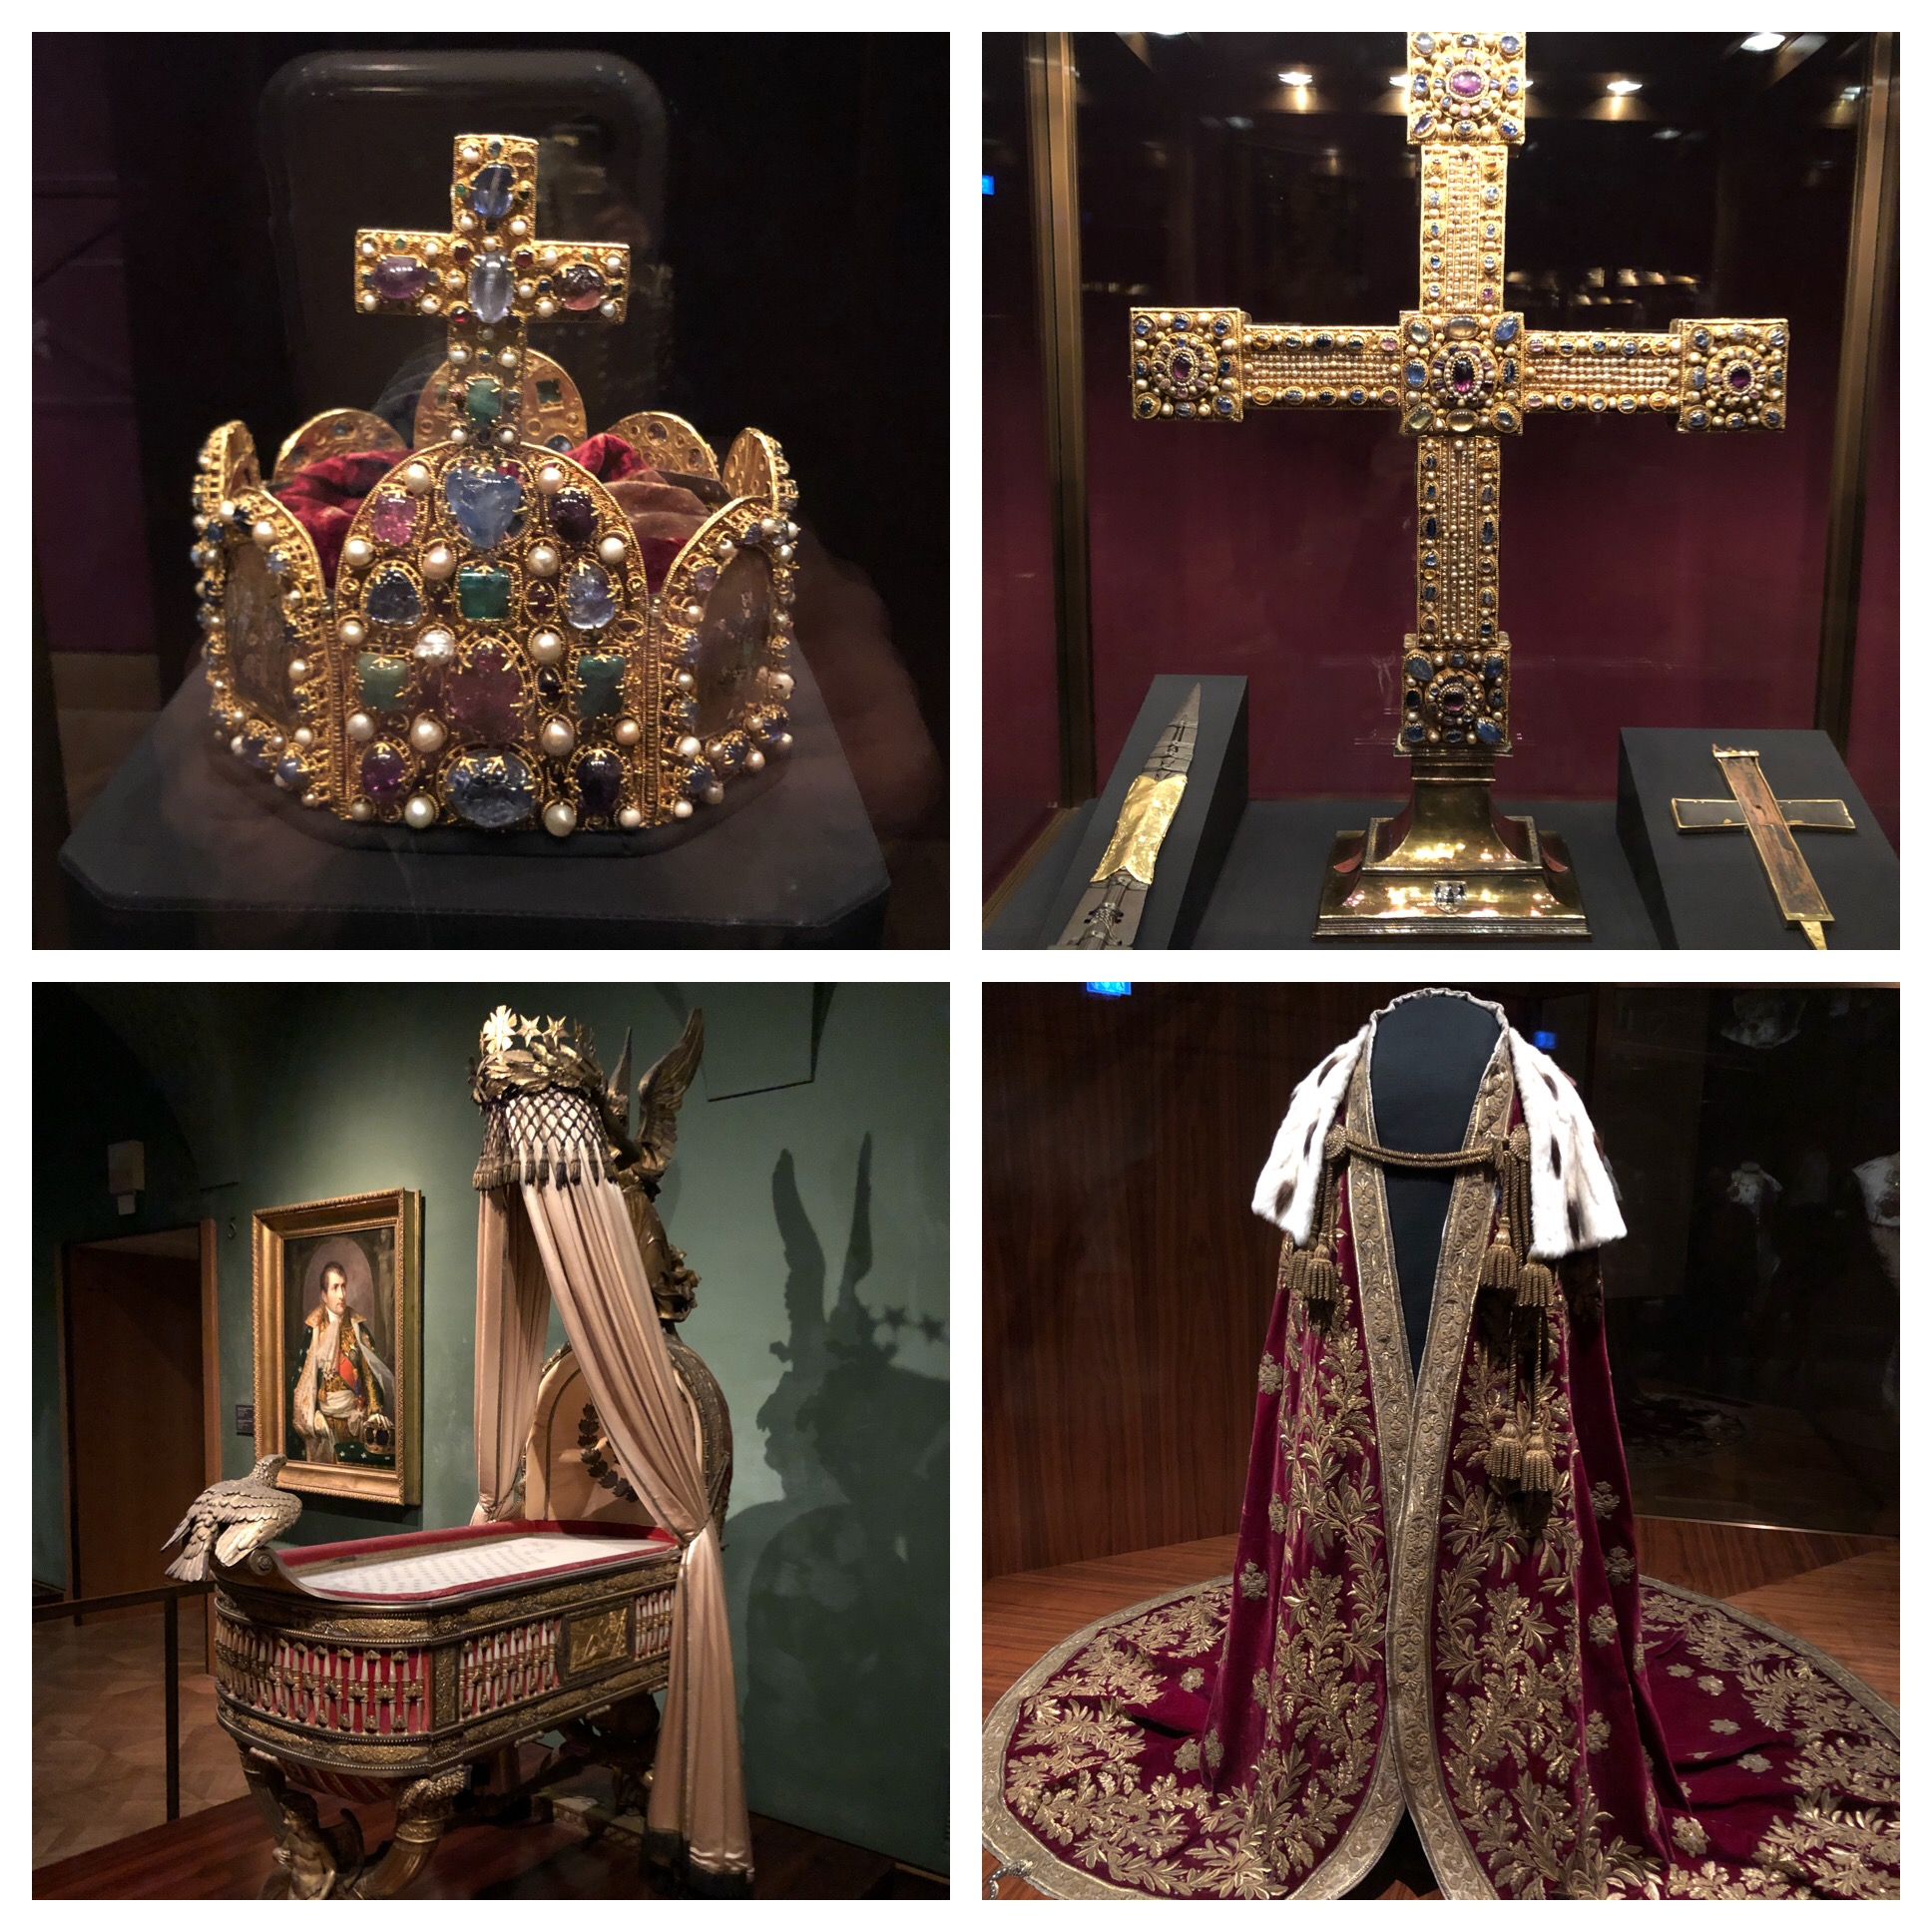 Top left - crown of the Holy Roman Emporer, top right - The Imperial Cross. The cross directly on the right of the big cross is an actual piece of  the  cross Jesus was crucified on! Bottom right - coronation vestments for the Austrian Emporer and bottom left - Cradle of the King of Rome.